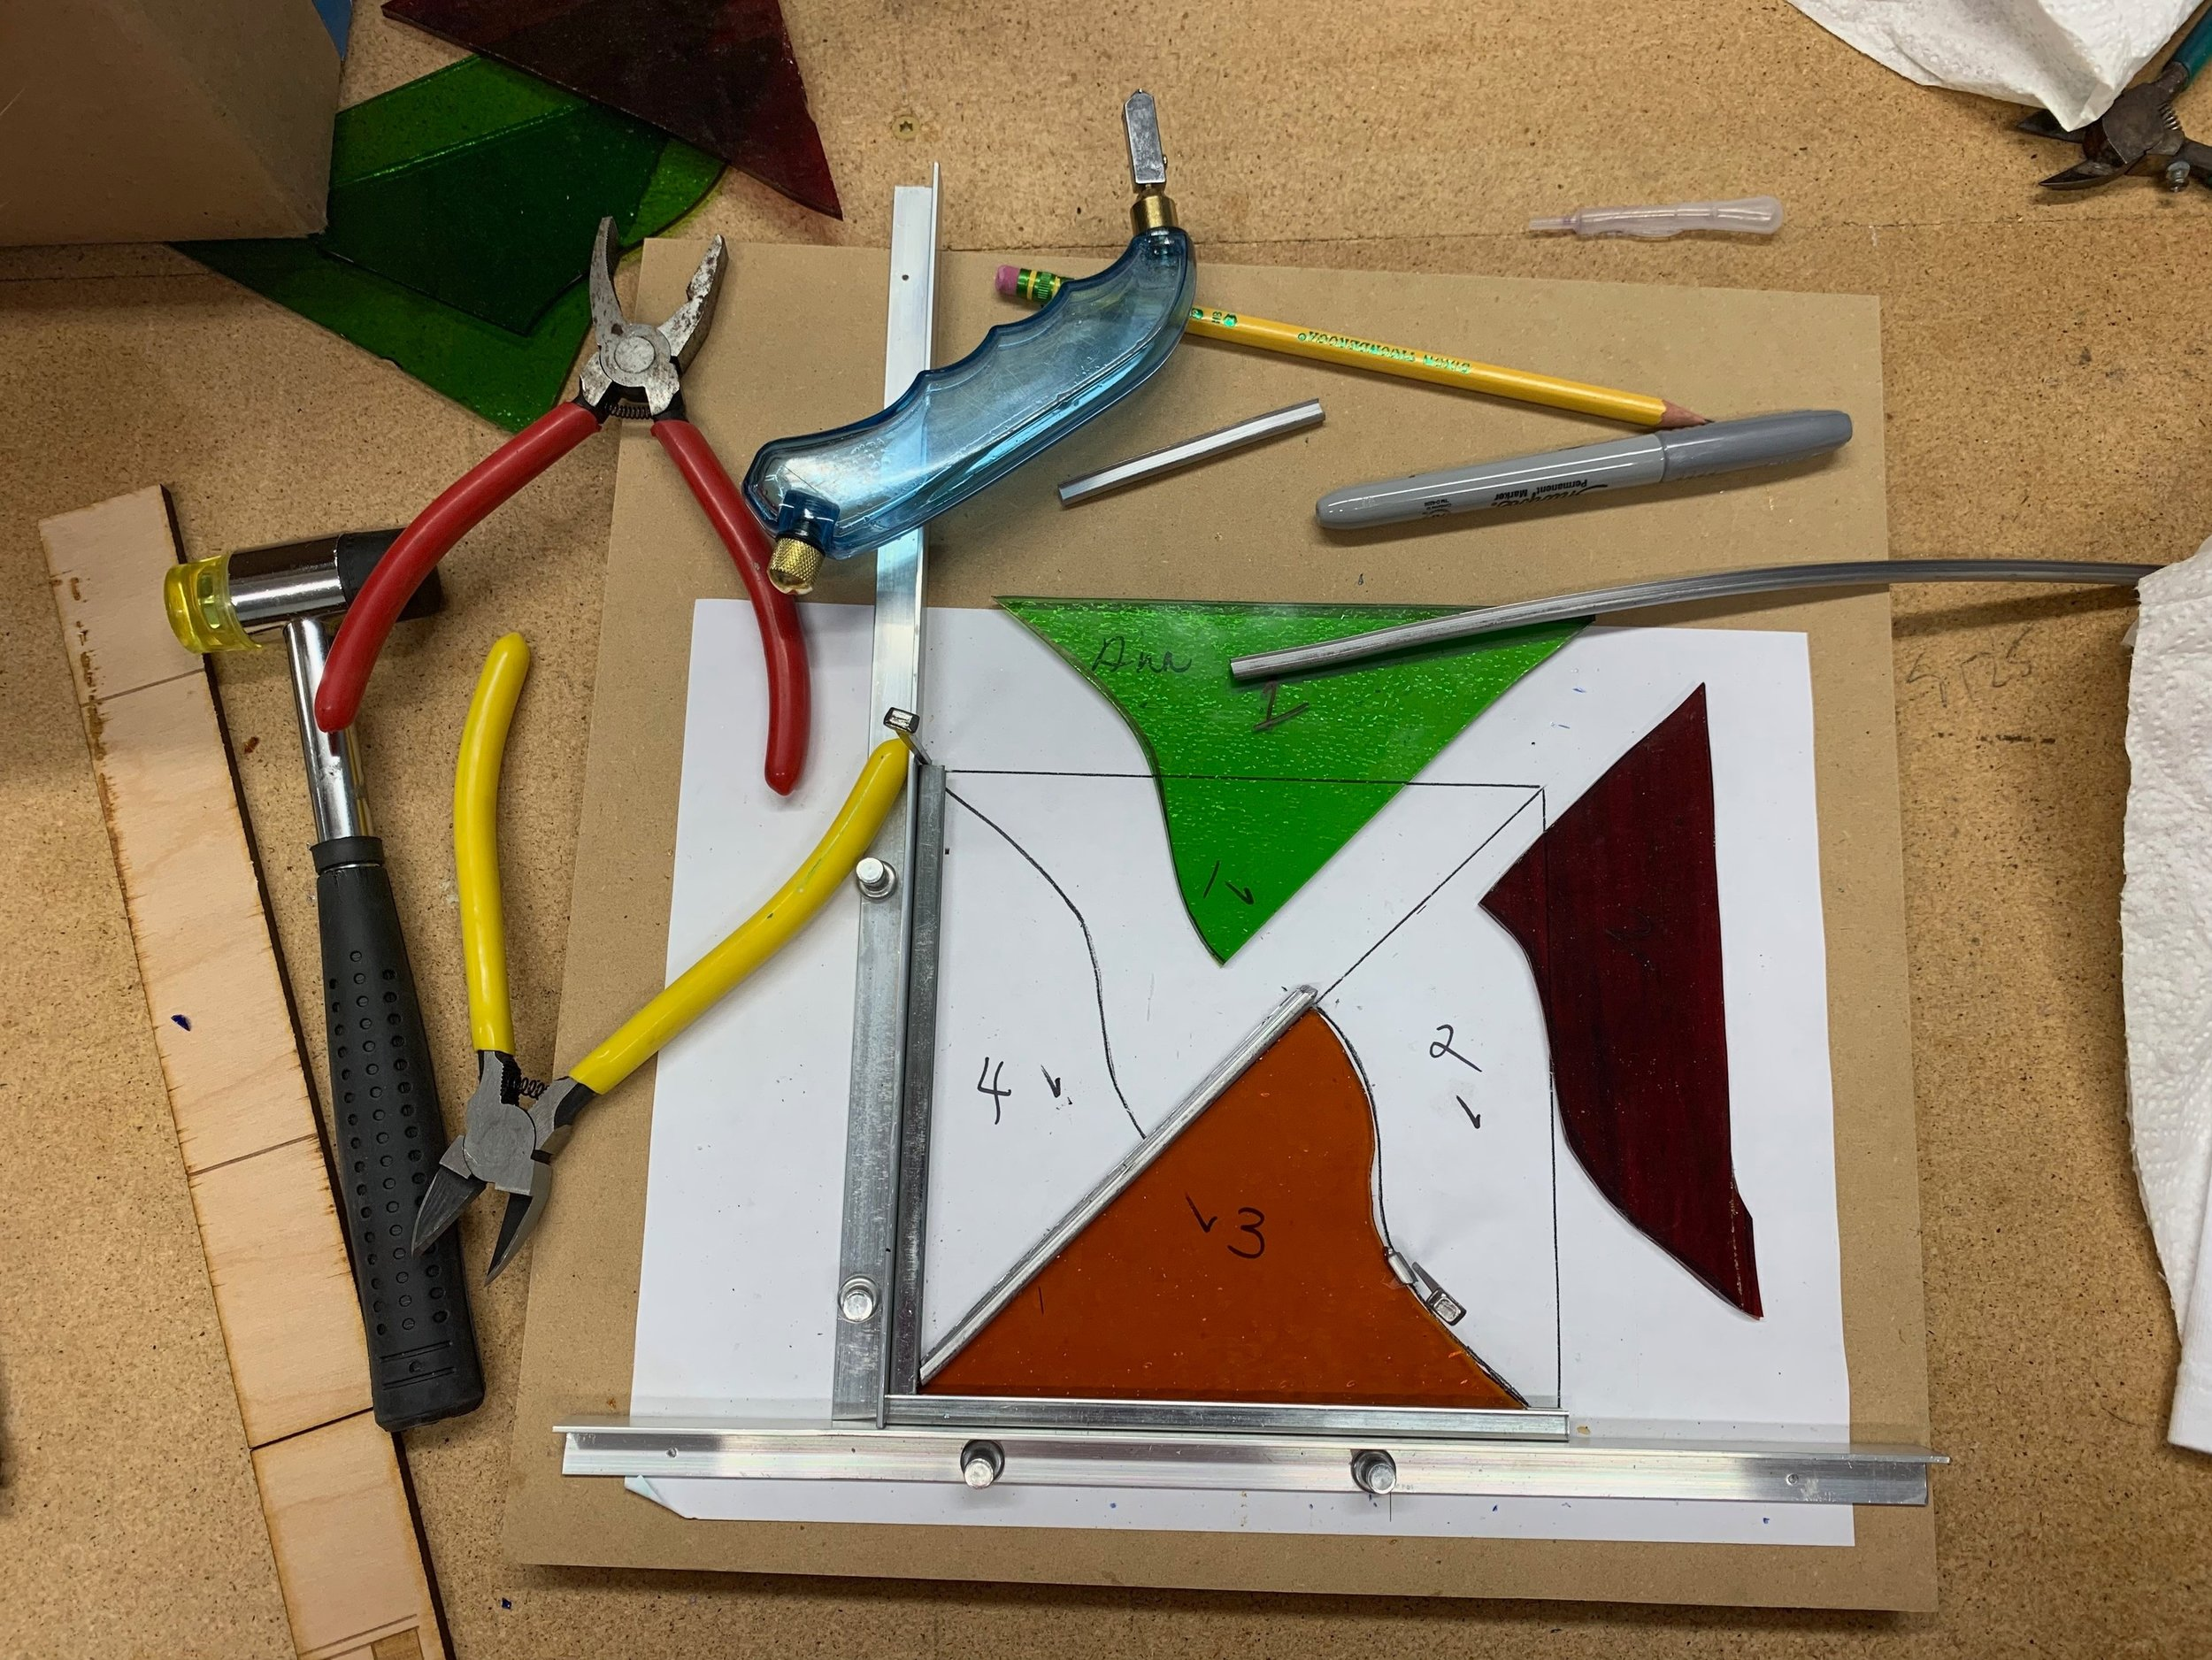 Stained Glass Space - Newest addition to the Makerspace. Come and learn the skills to do stained glass in our classes, or utilize the space as a Member to make make your own creations.